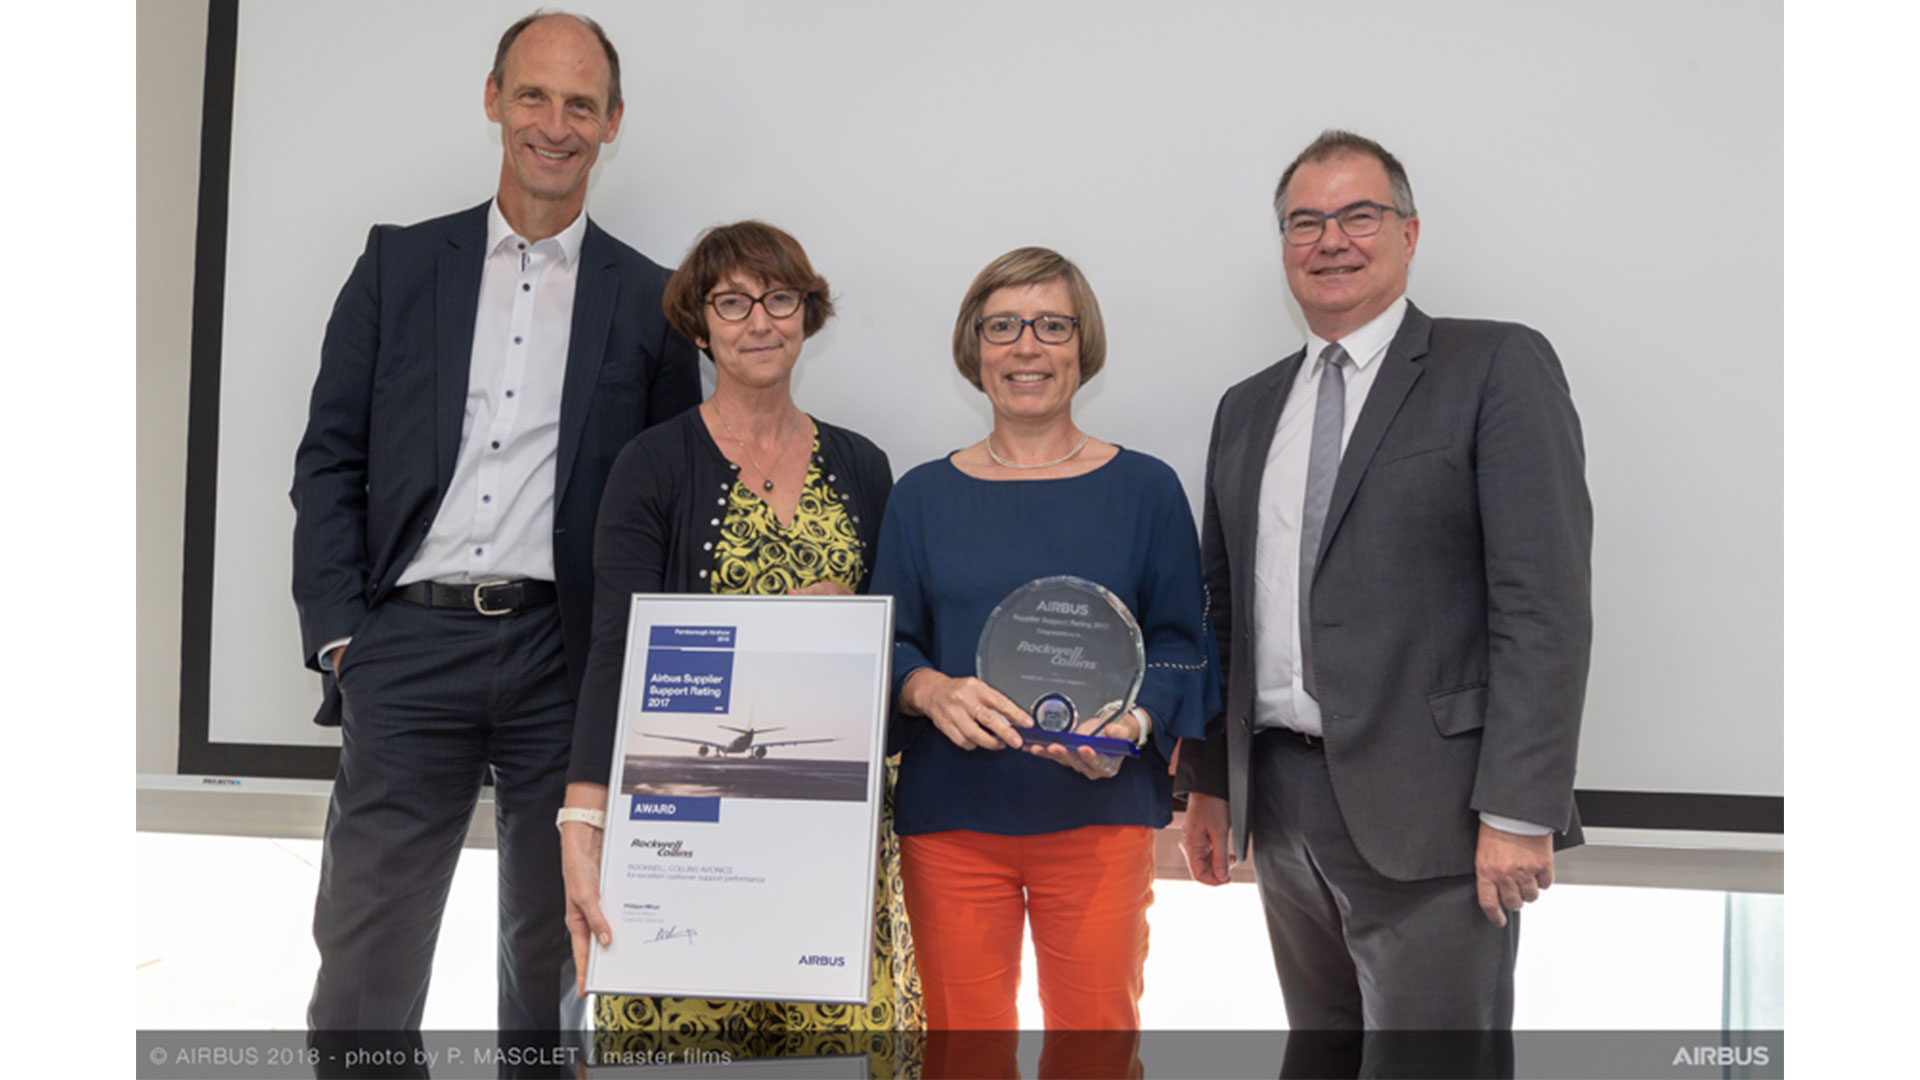 Airbus Award Winner 2018